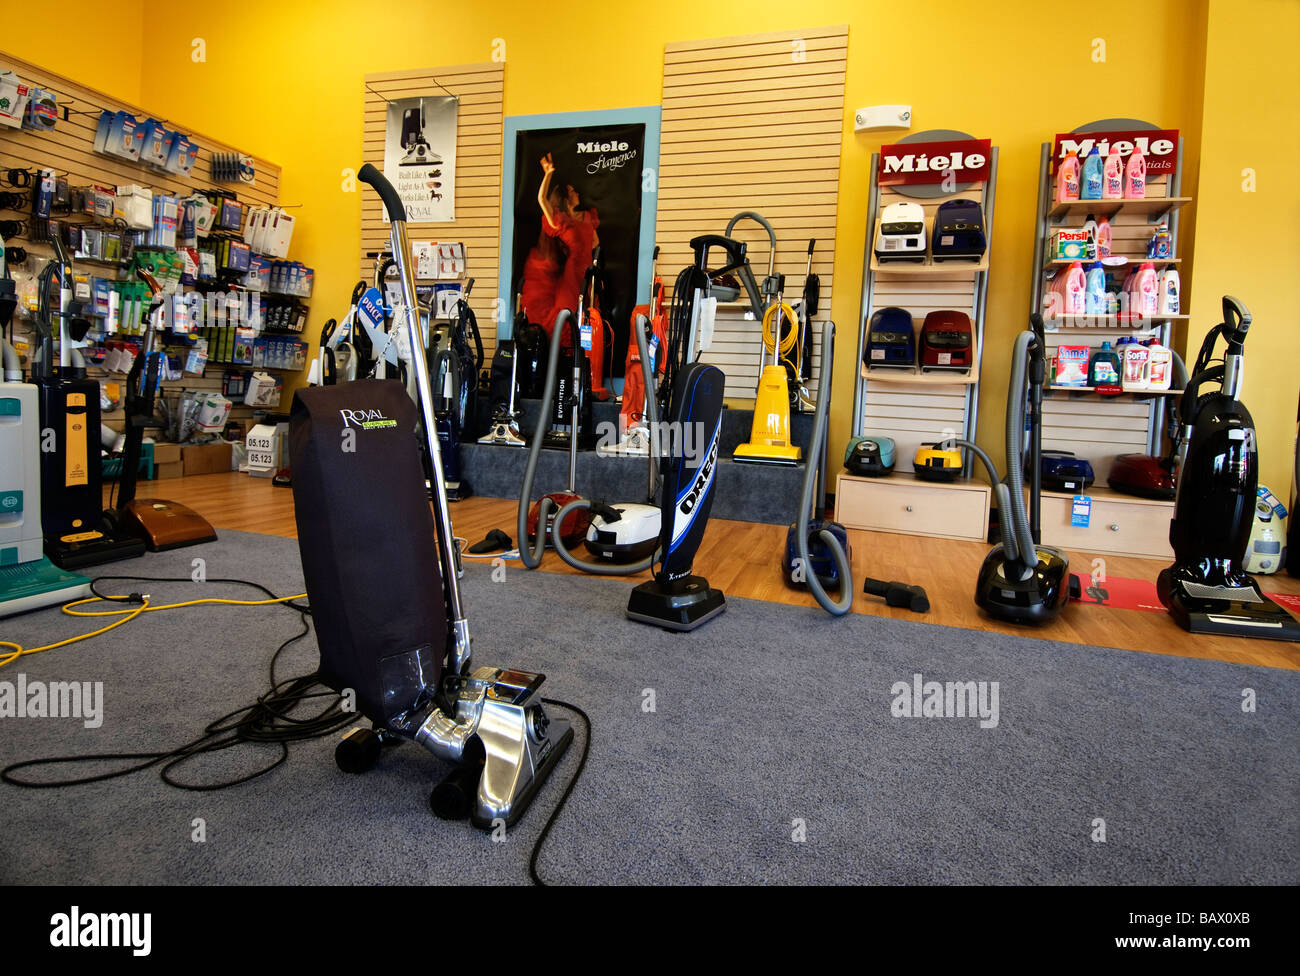 Good Vacuum Cleaner Store Royal U0026 Repair Shop   Stock Image